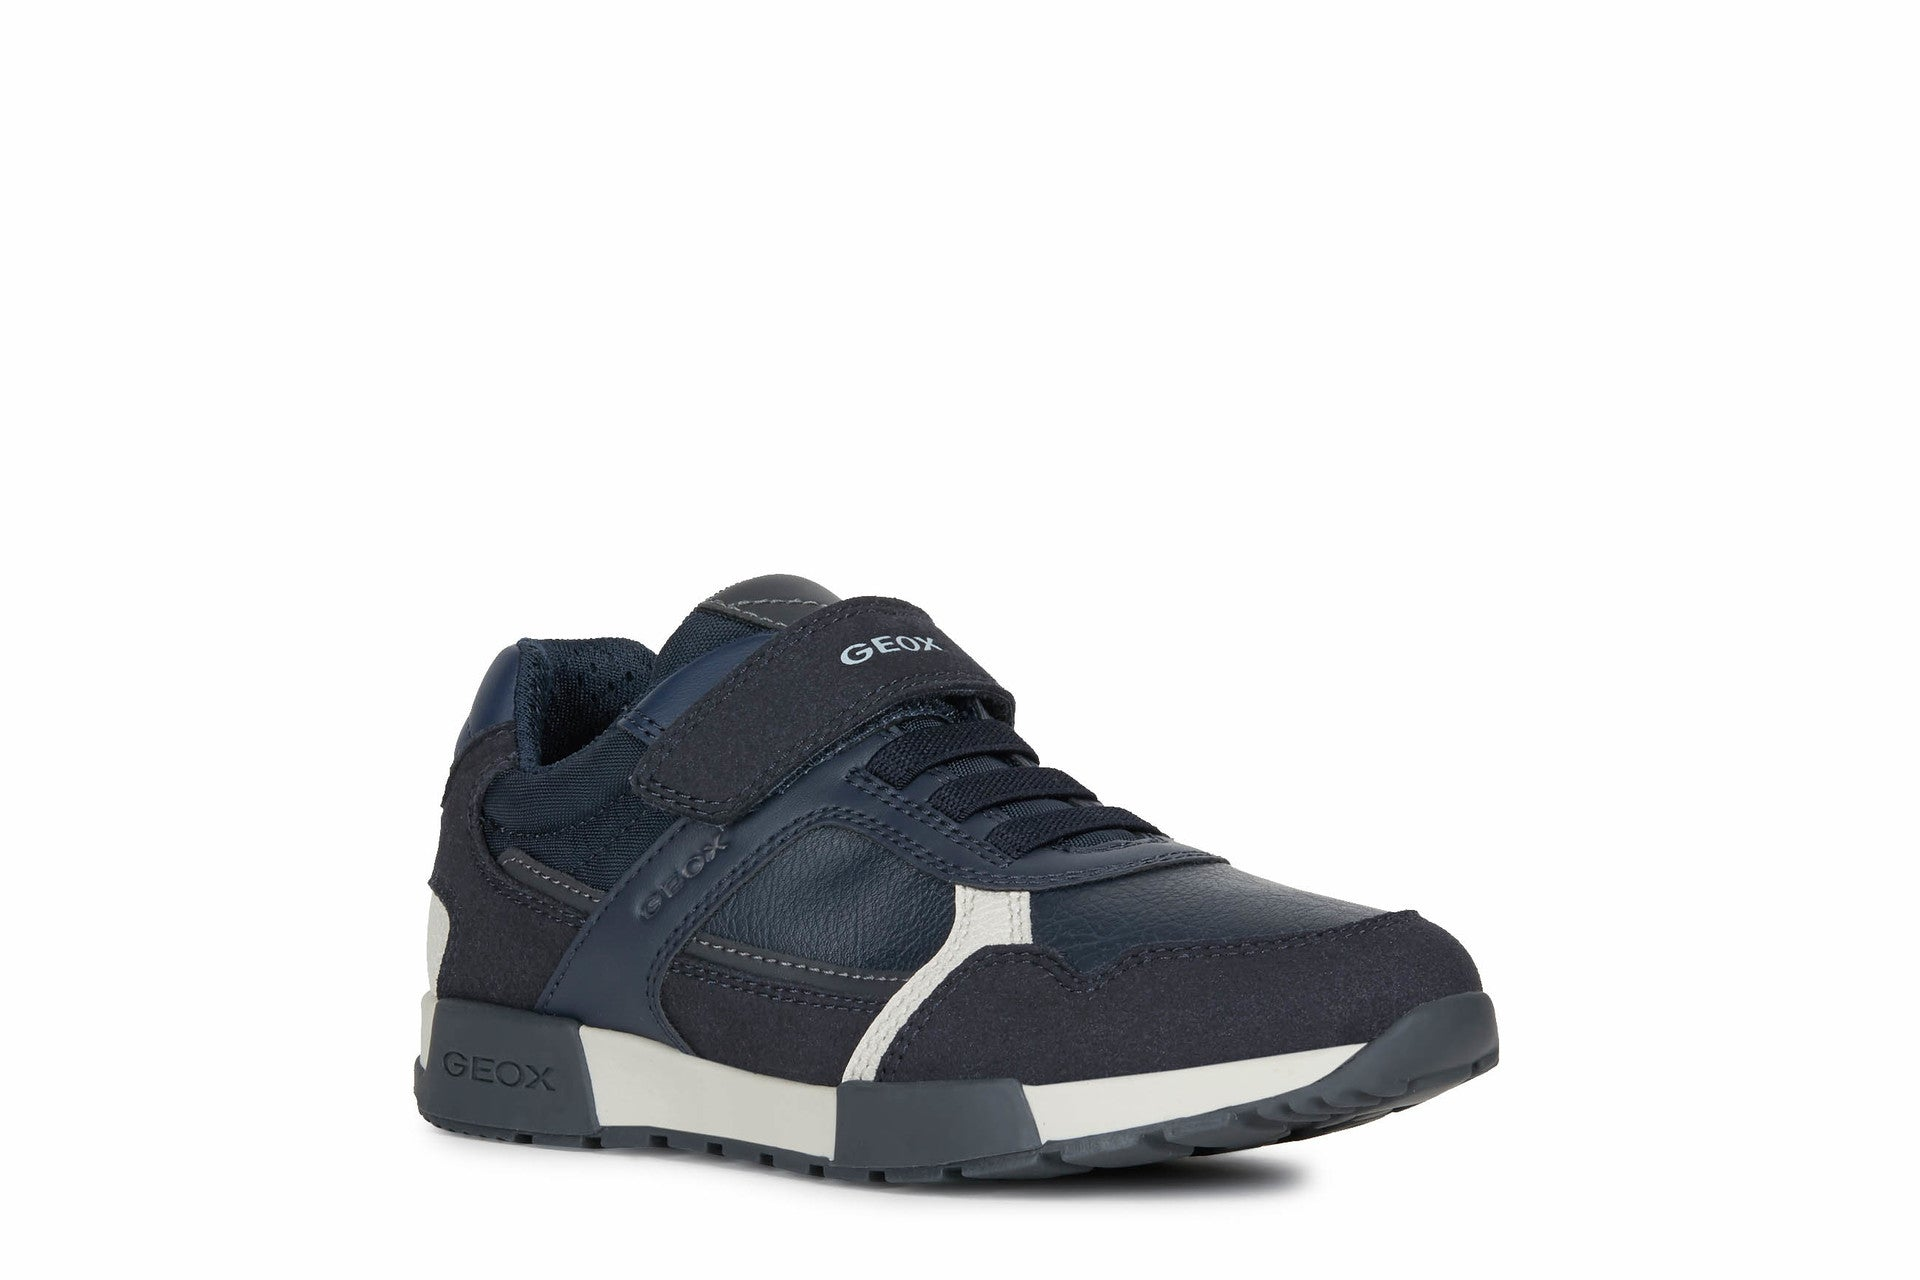 Navy Blue And Dark Grey Sole Sneaker